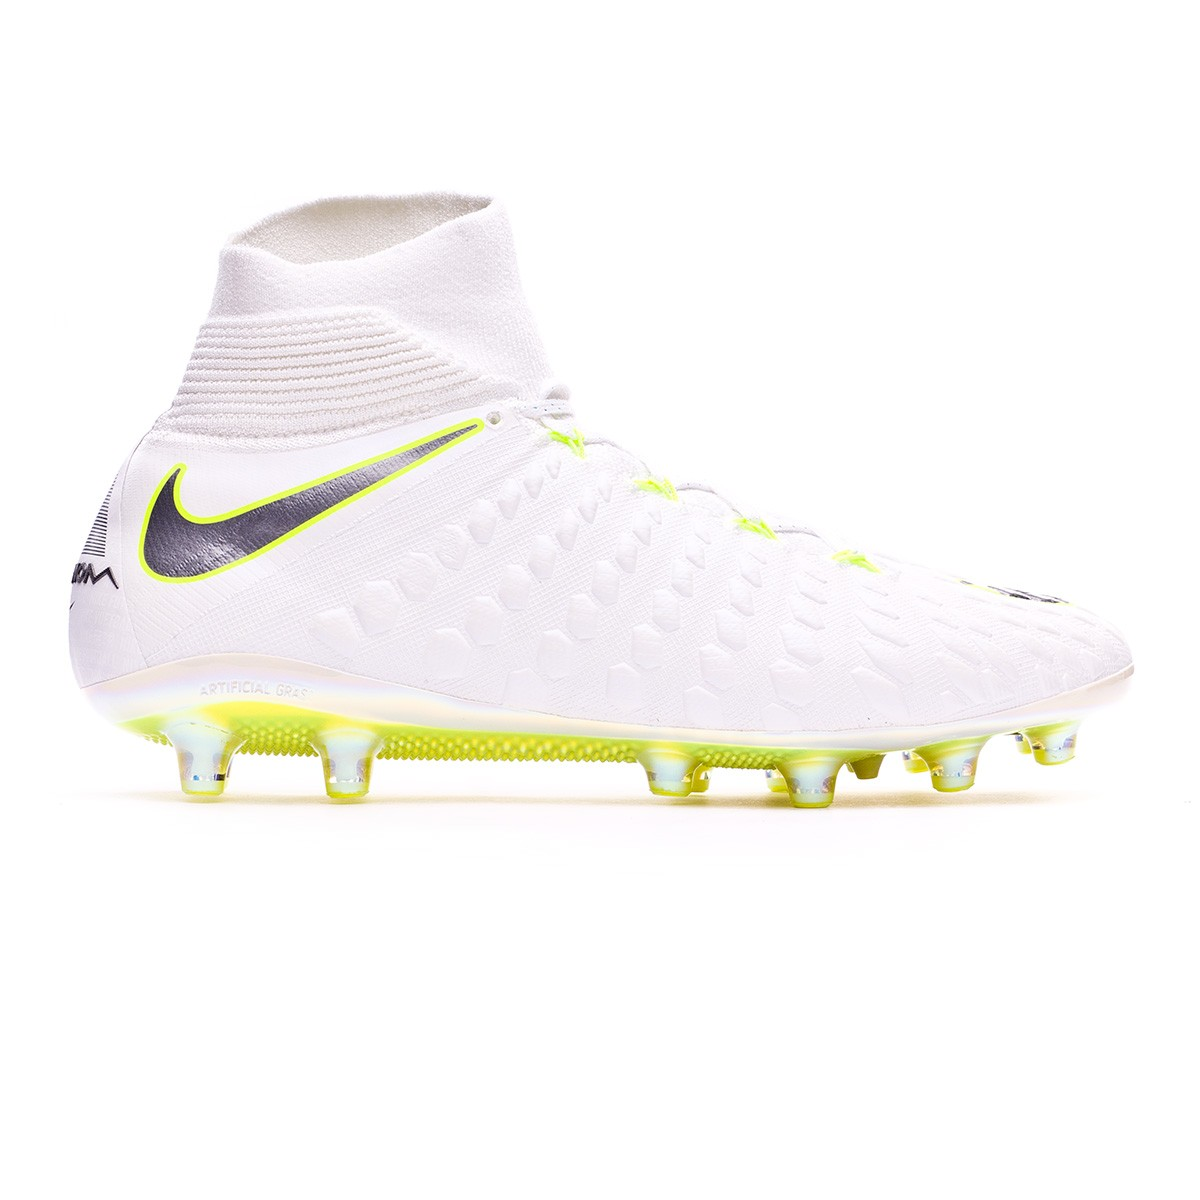 30cd5bb165d Football Boots Nike Hypervenom Phantom III Elite DF AG-Pro White-Metallic  cool grey-Volt-Metallic cool g - Football store Fútbol Emotion